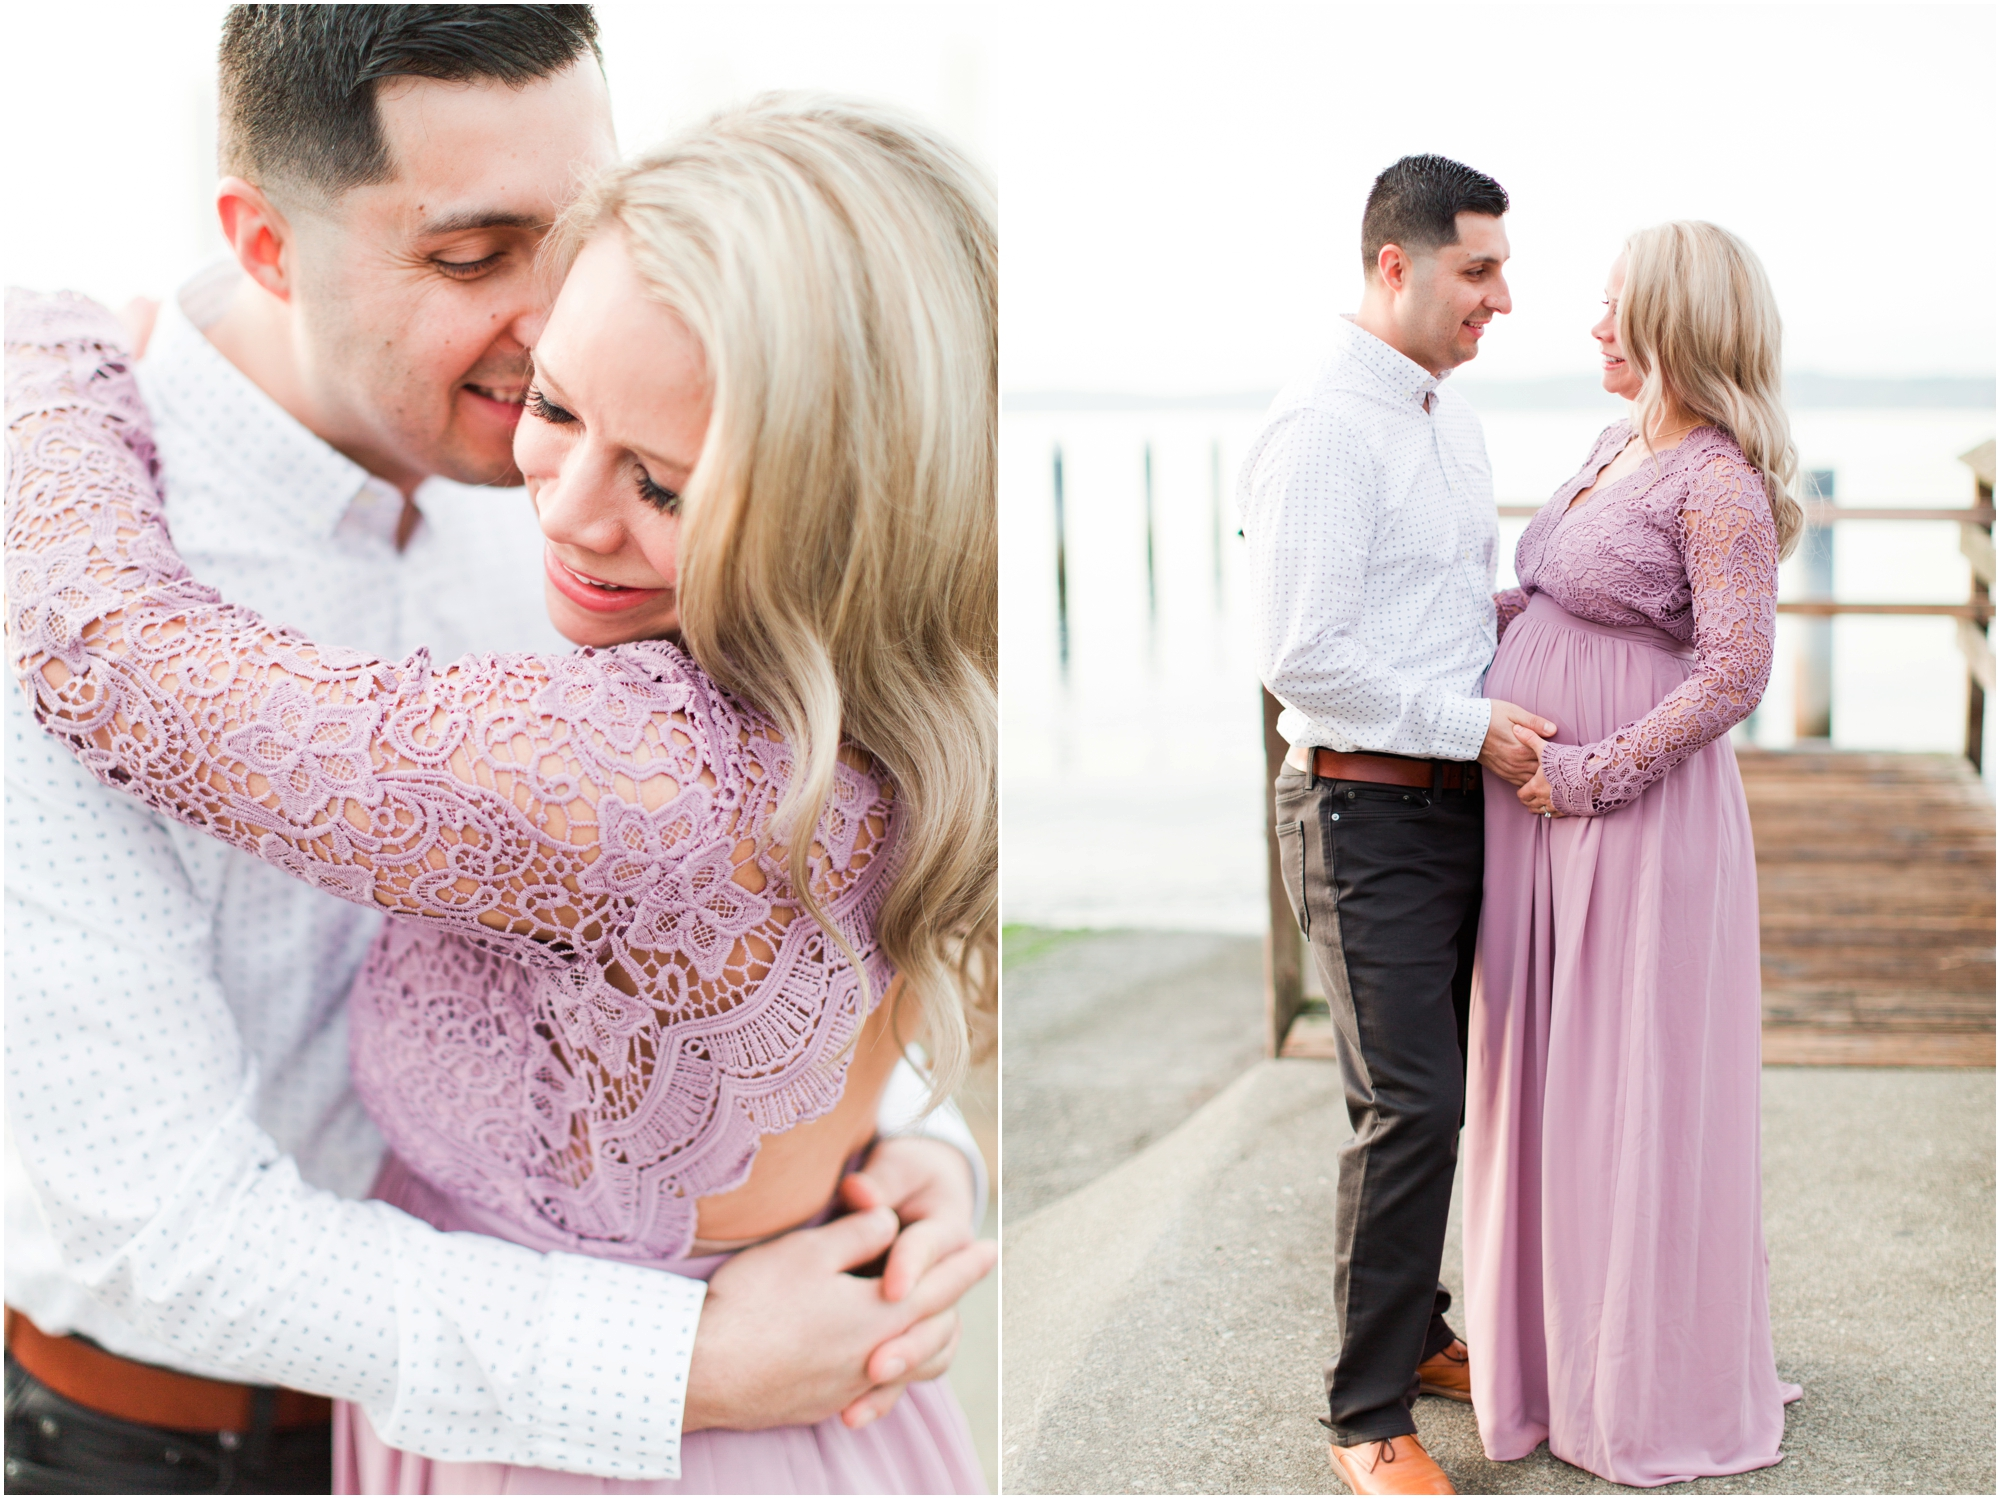 Maternity photos by Briana Calderon Photography based in the Greater Seattle & Tacoma, WA_0970.jpg